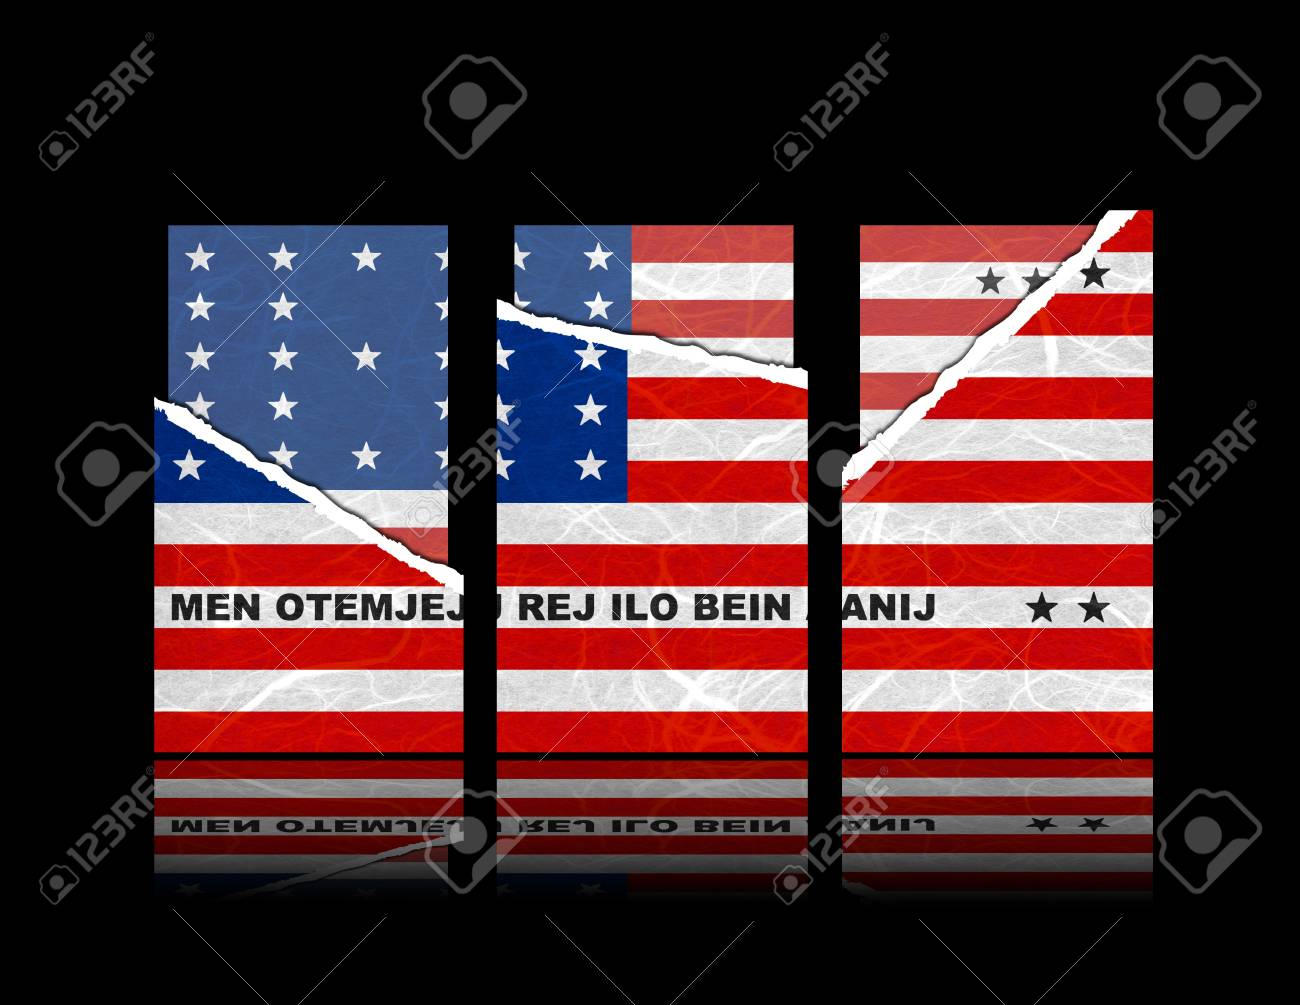 Bikini Atoll flag of tear paper with gift cards. Mulberry paper on black  background.